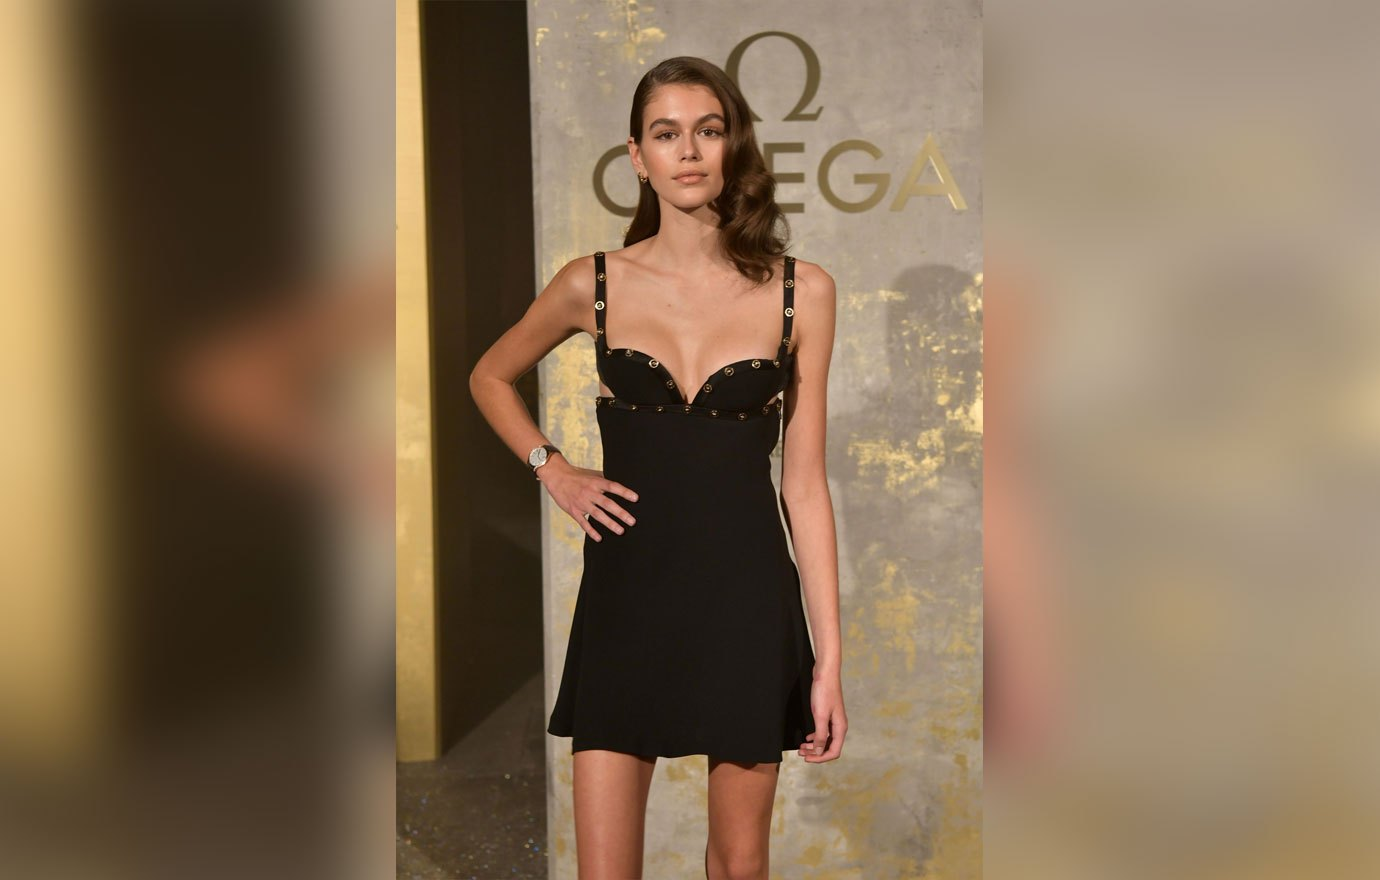 ** RIGHTS: NO WEB - ONLY UNITED STATES ** Berlin, GERMANY - Kaia Gerber and Toni Garrn attend the Omega event in Berlin. Pictured: Kaia Gerber BACKGRID USA 2 MAY 2018 USA: +1 310 798 9111 / usasales@backgrid.com UK: +44 208 344 2007 / uksales@backgrid.com *UK Clients - Pictures Containing Children Please Pixelate Face Prior To Publication*